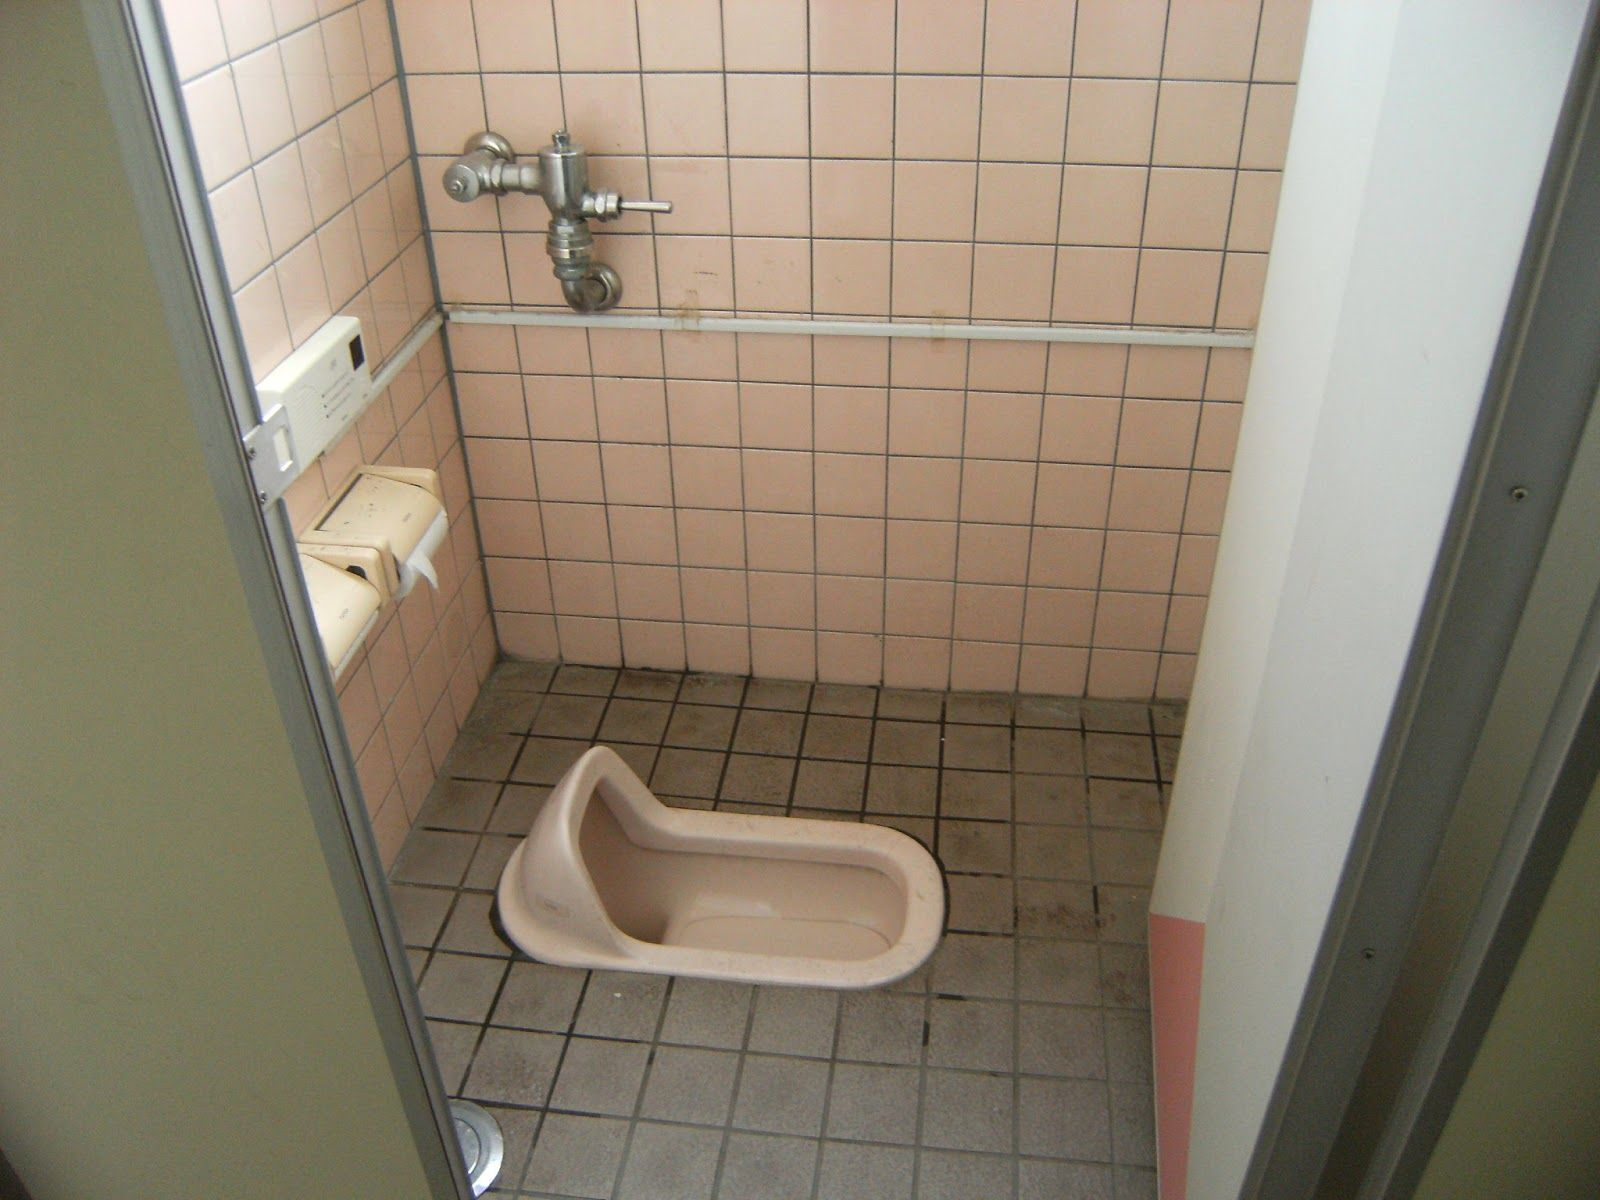 Heading to japan expect yourself to squat in these toilets and